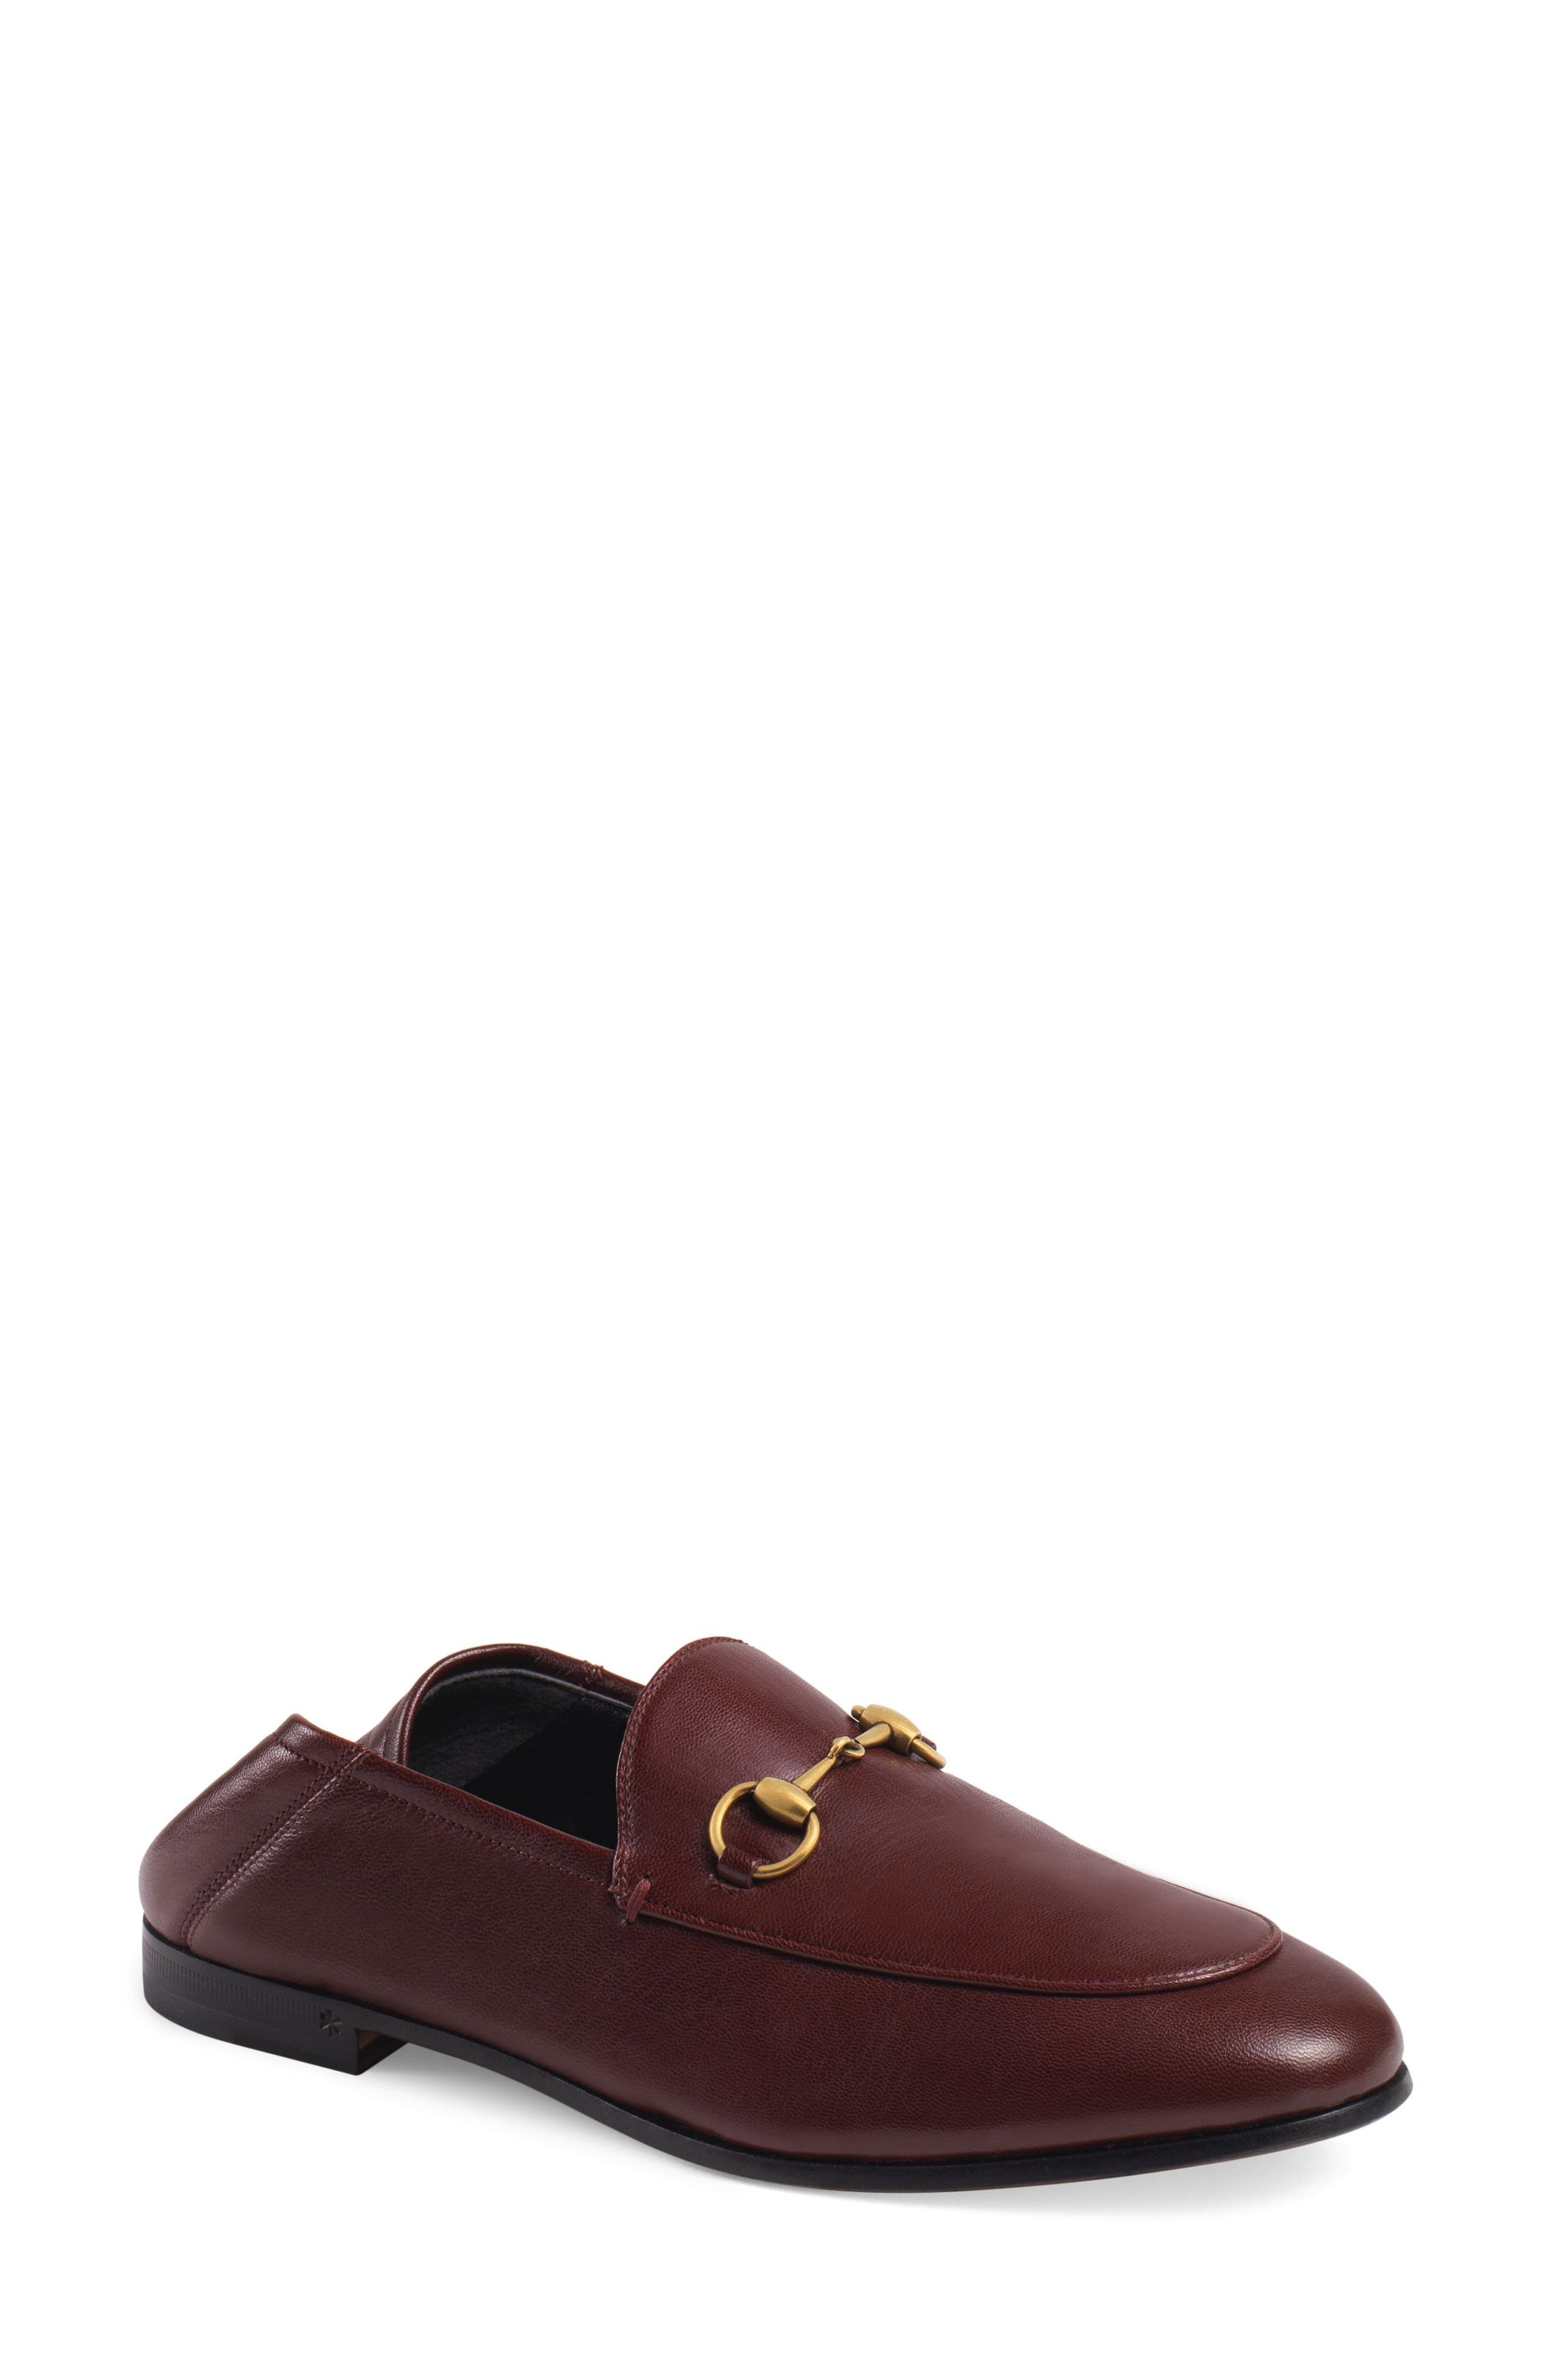 Brixton Convertible Loafer,                         Main,                         color, VINTAGE BORDEAUX